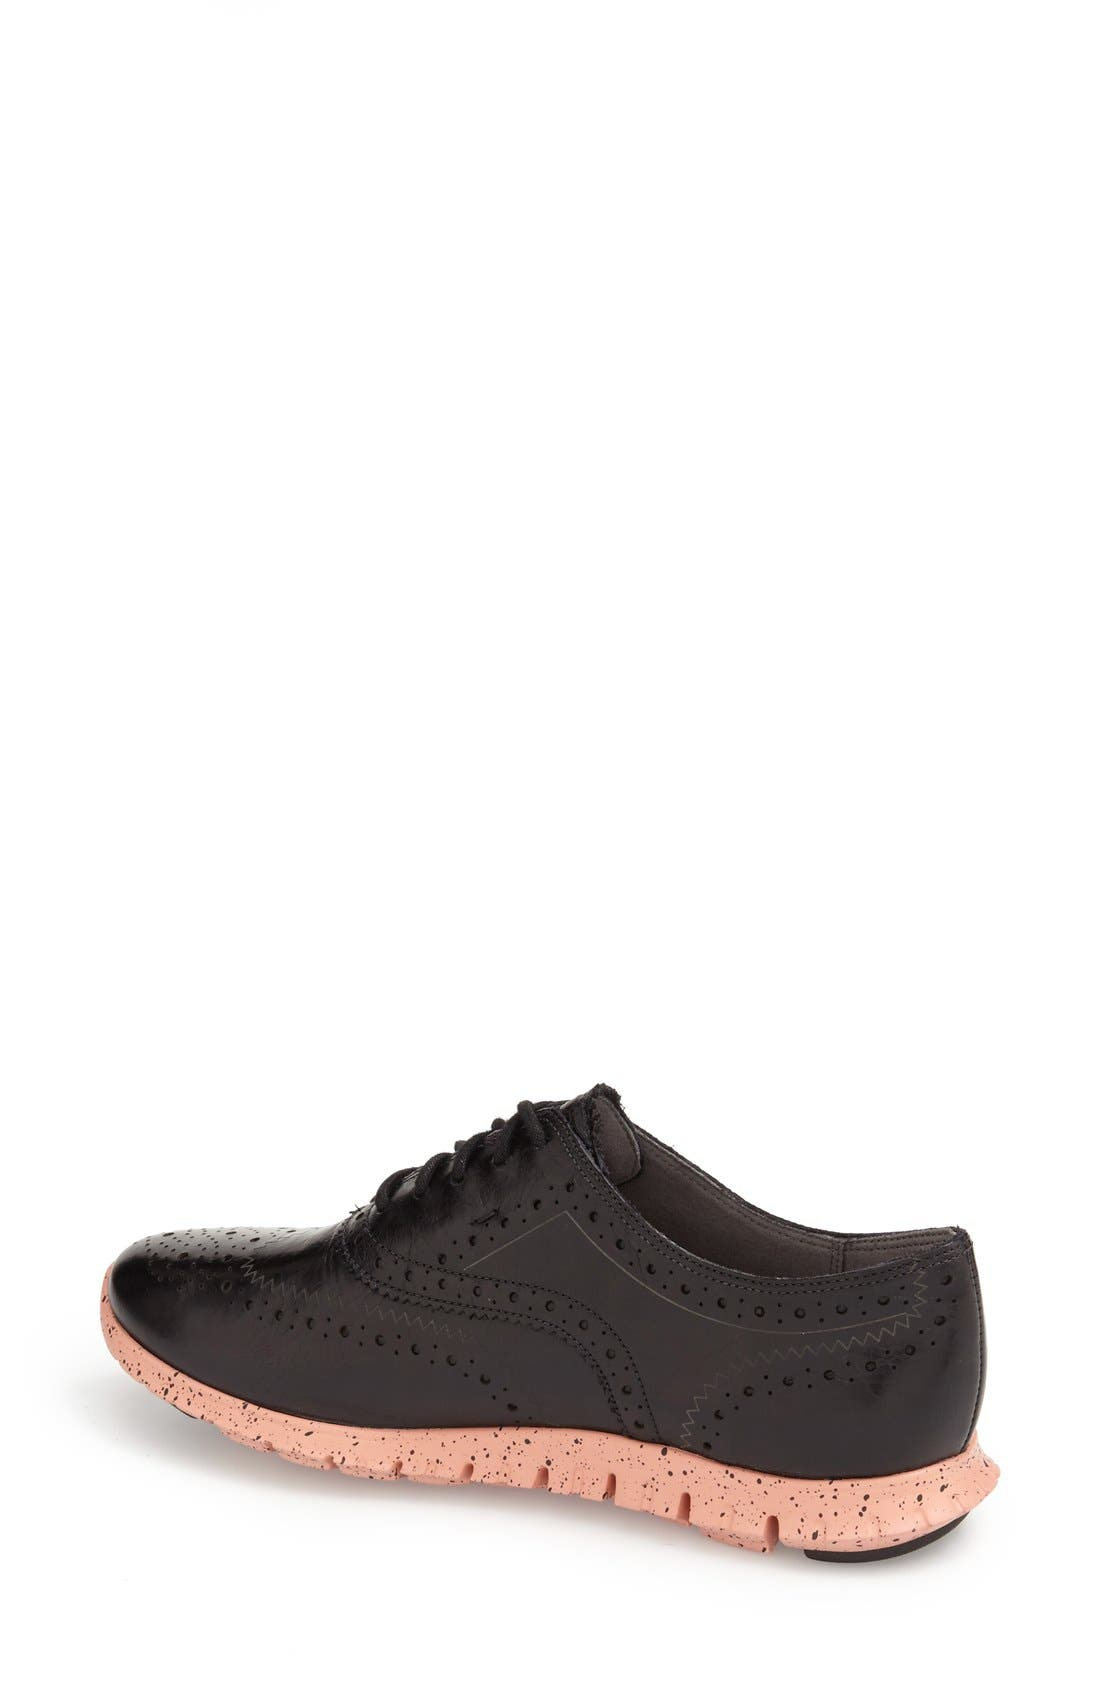 'ZeroGrand' Perforated Wingtip,                             Alternate thumbnail 38, color,